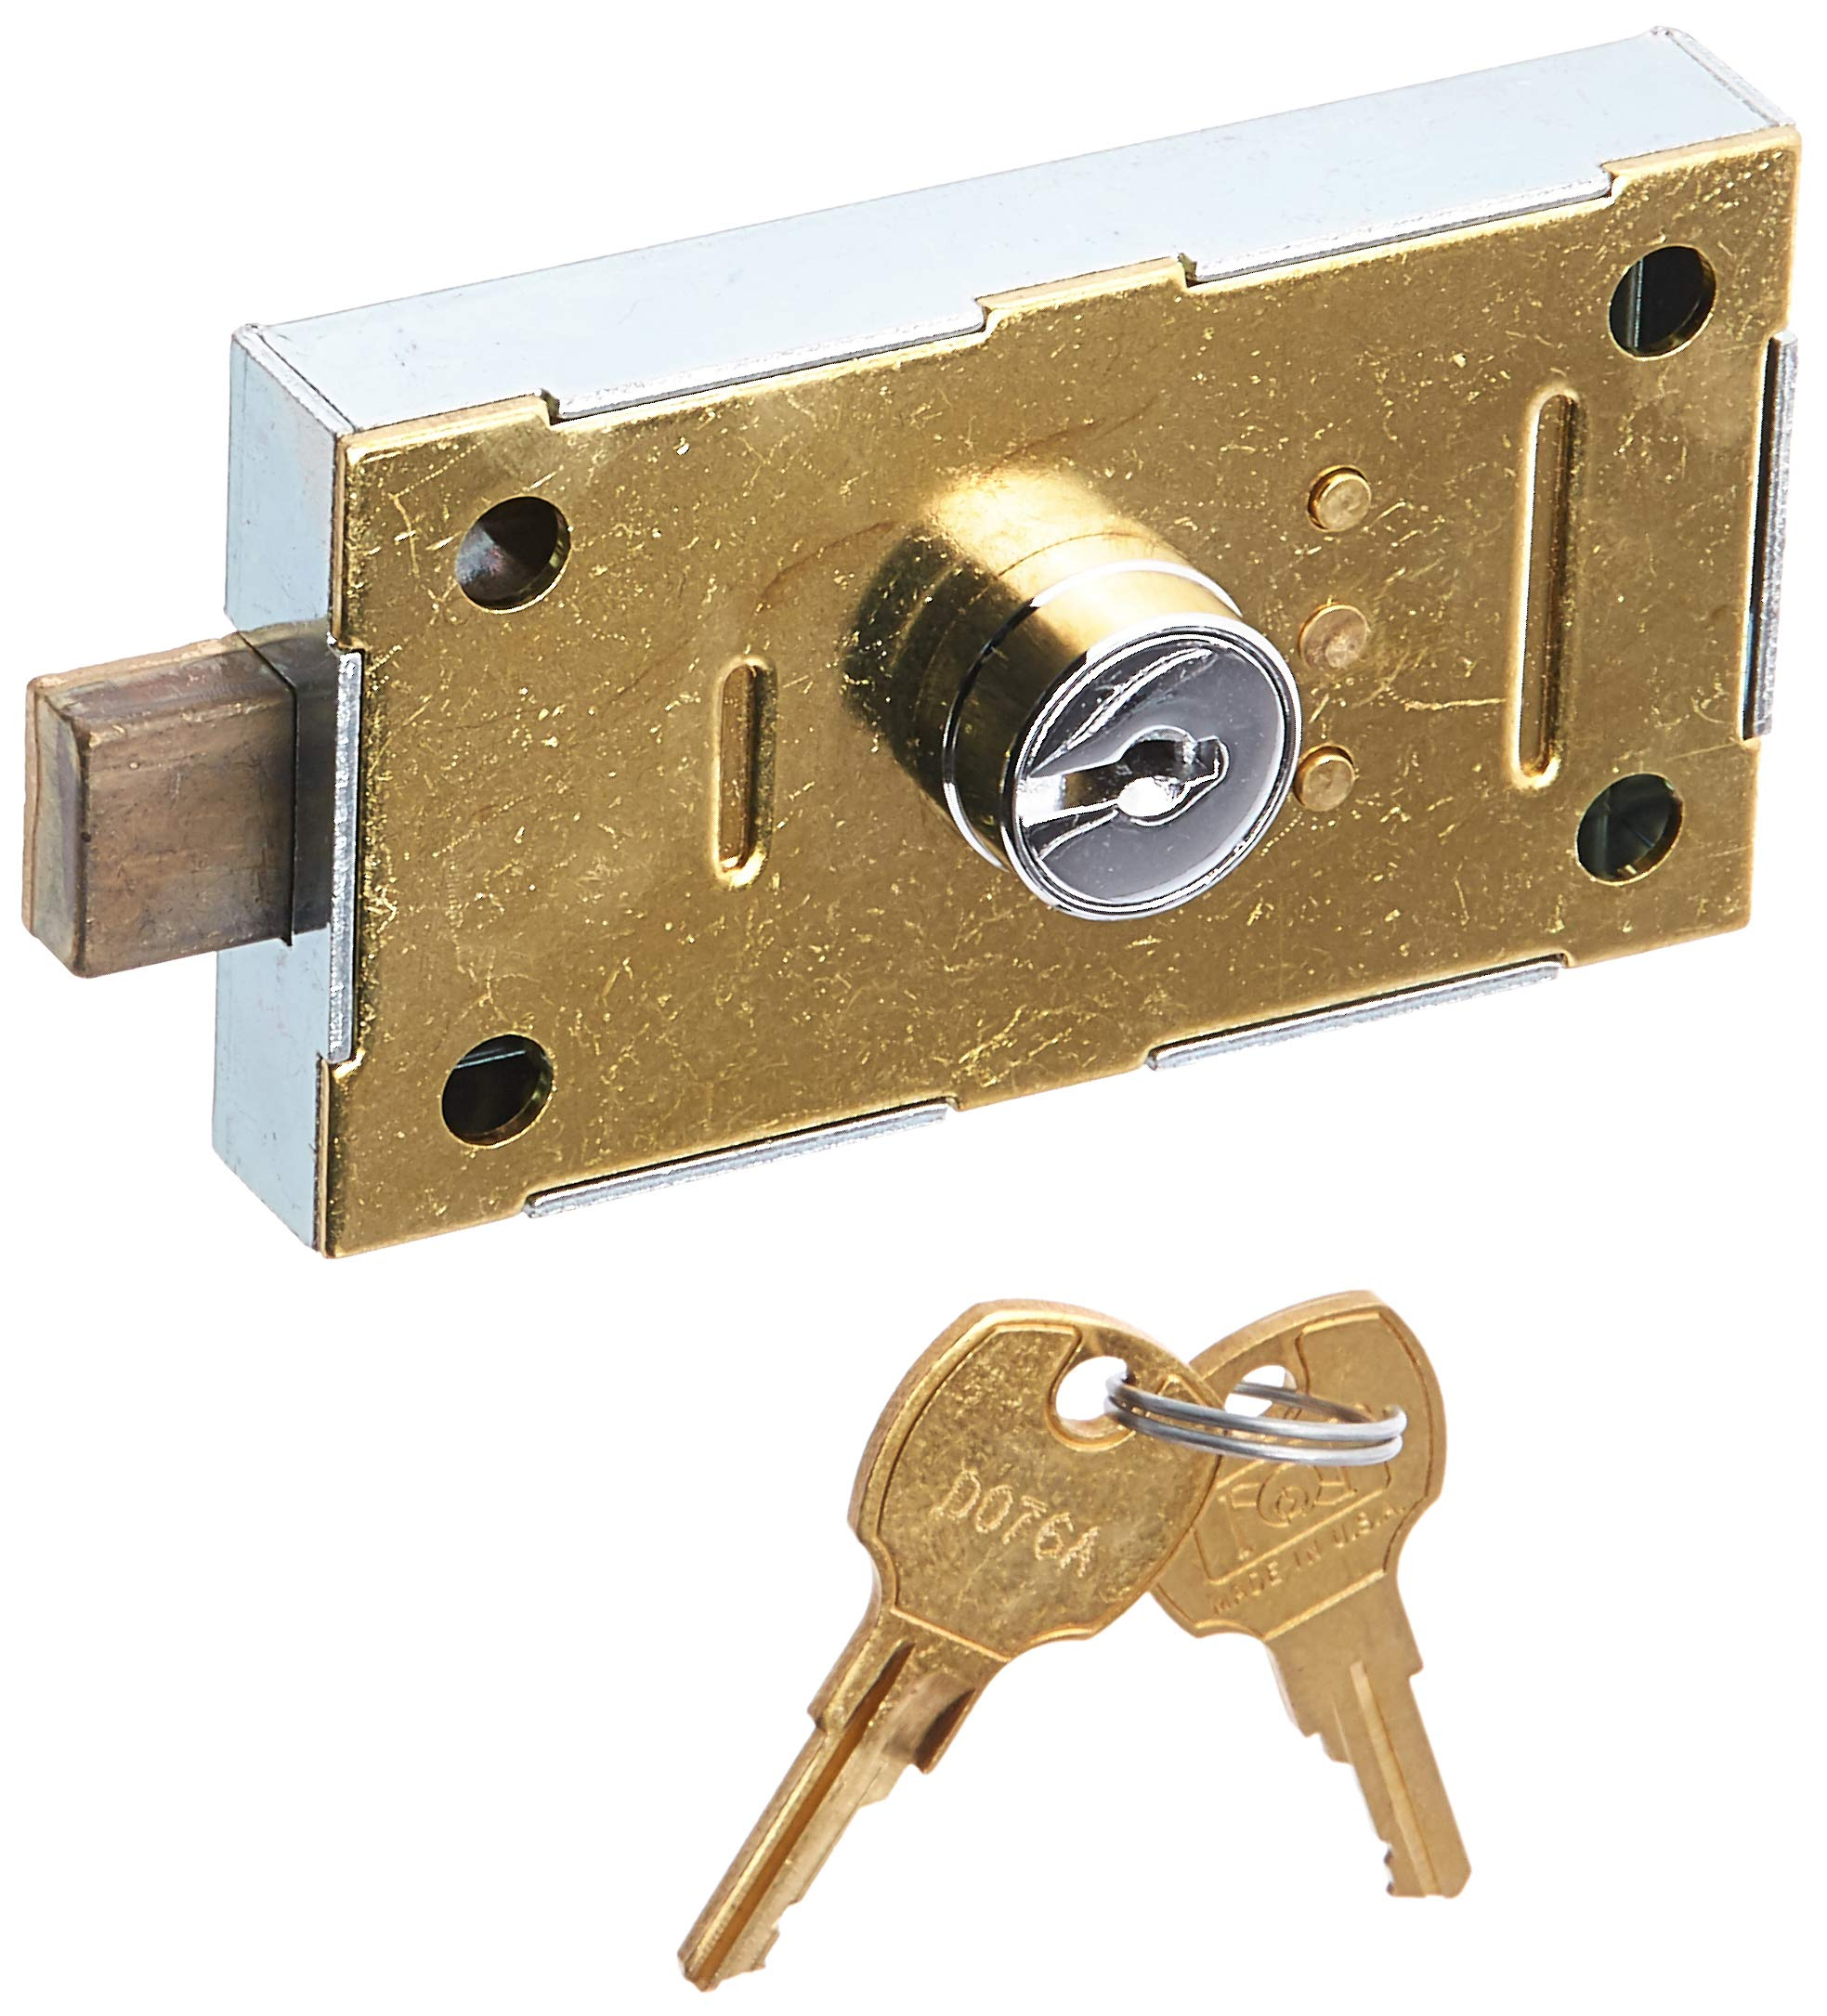 Salsbury Industries 2275 Replacement Commercial Lock for Private Access of Aluminum Parcel Locker with 2 Keys